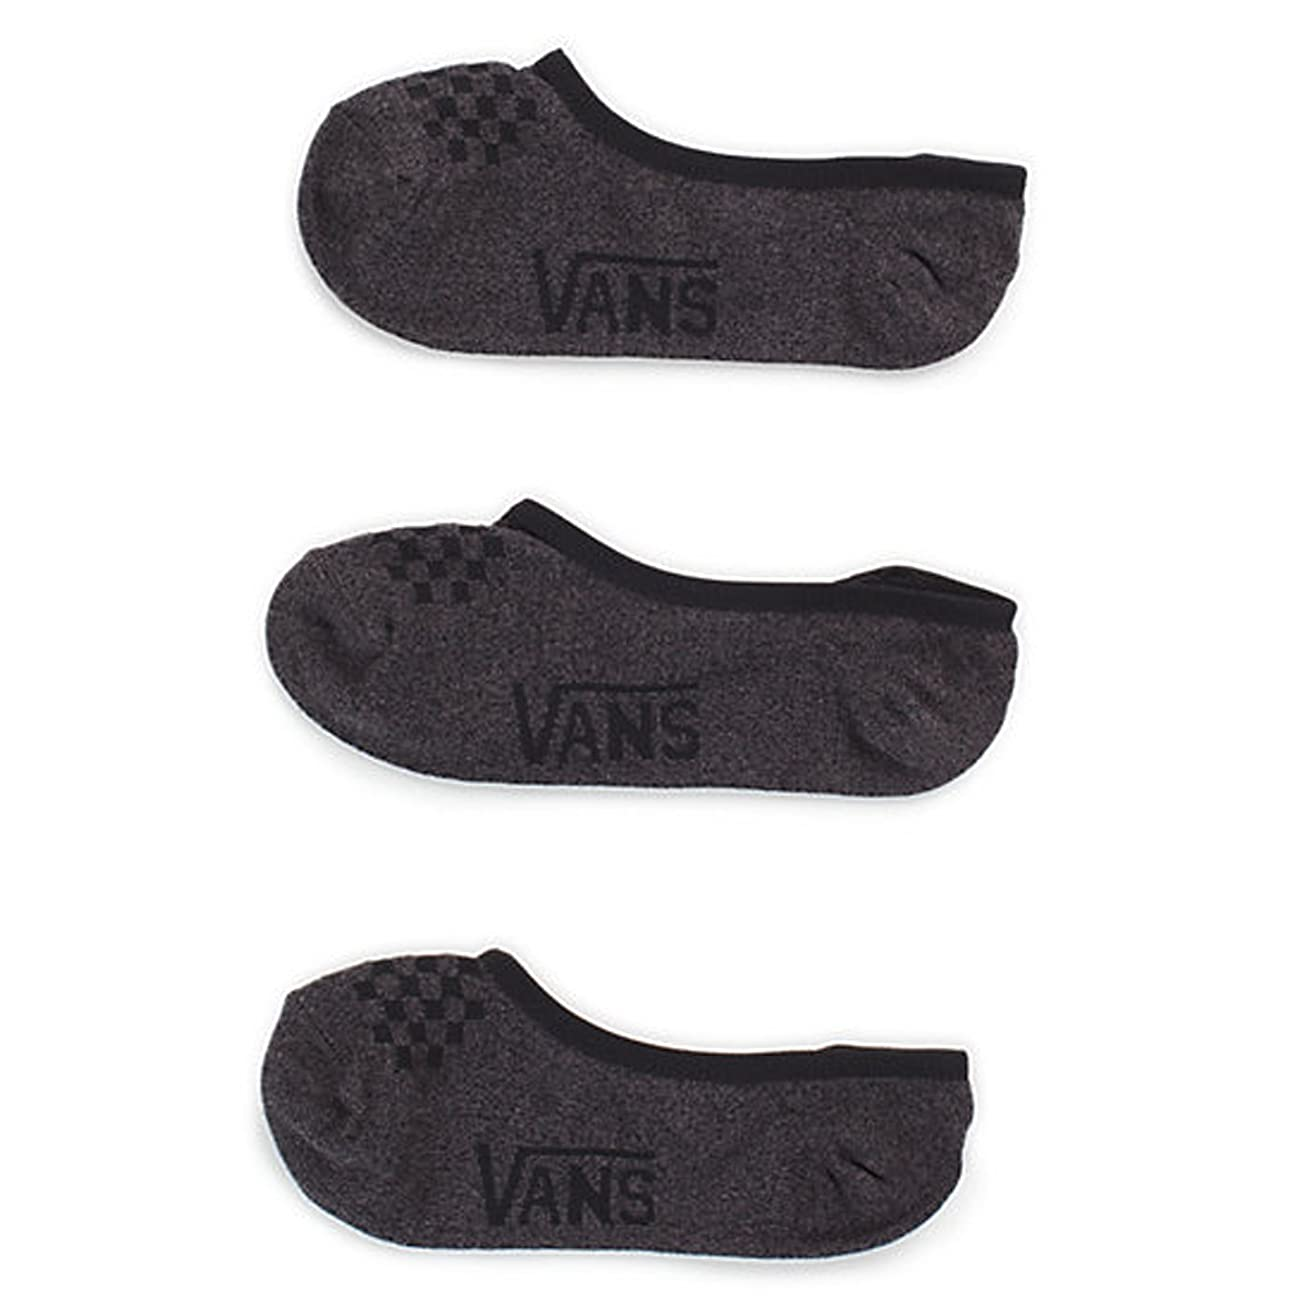 Vans Super No Show Socks - Women's and Girl's